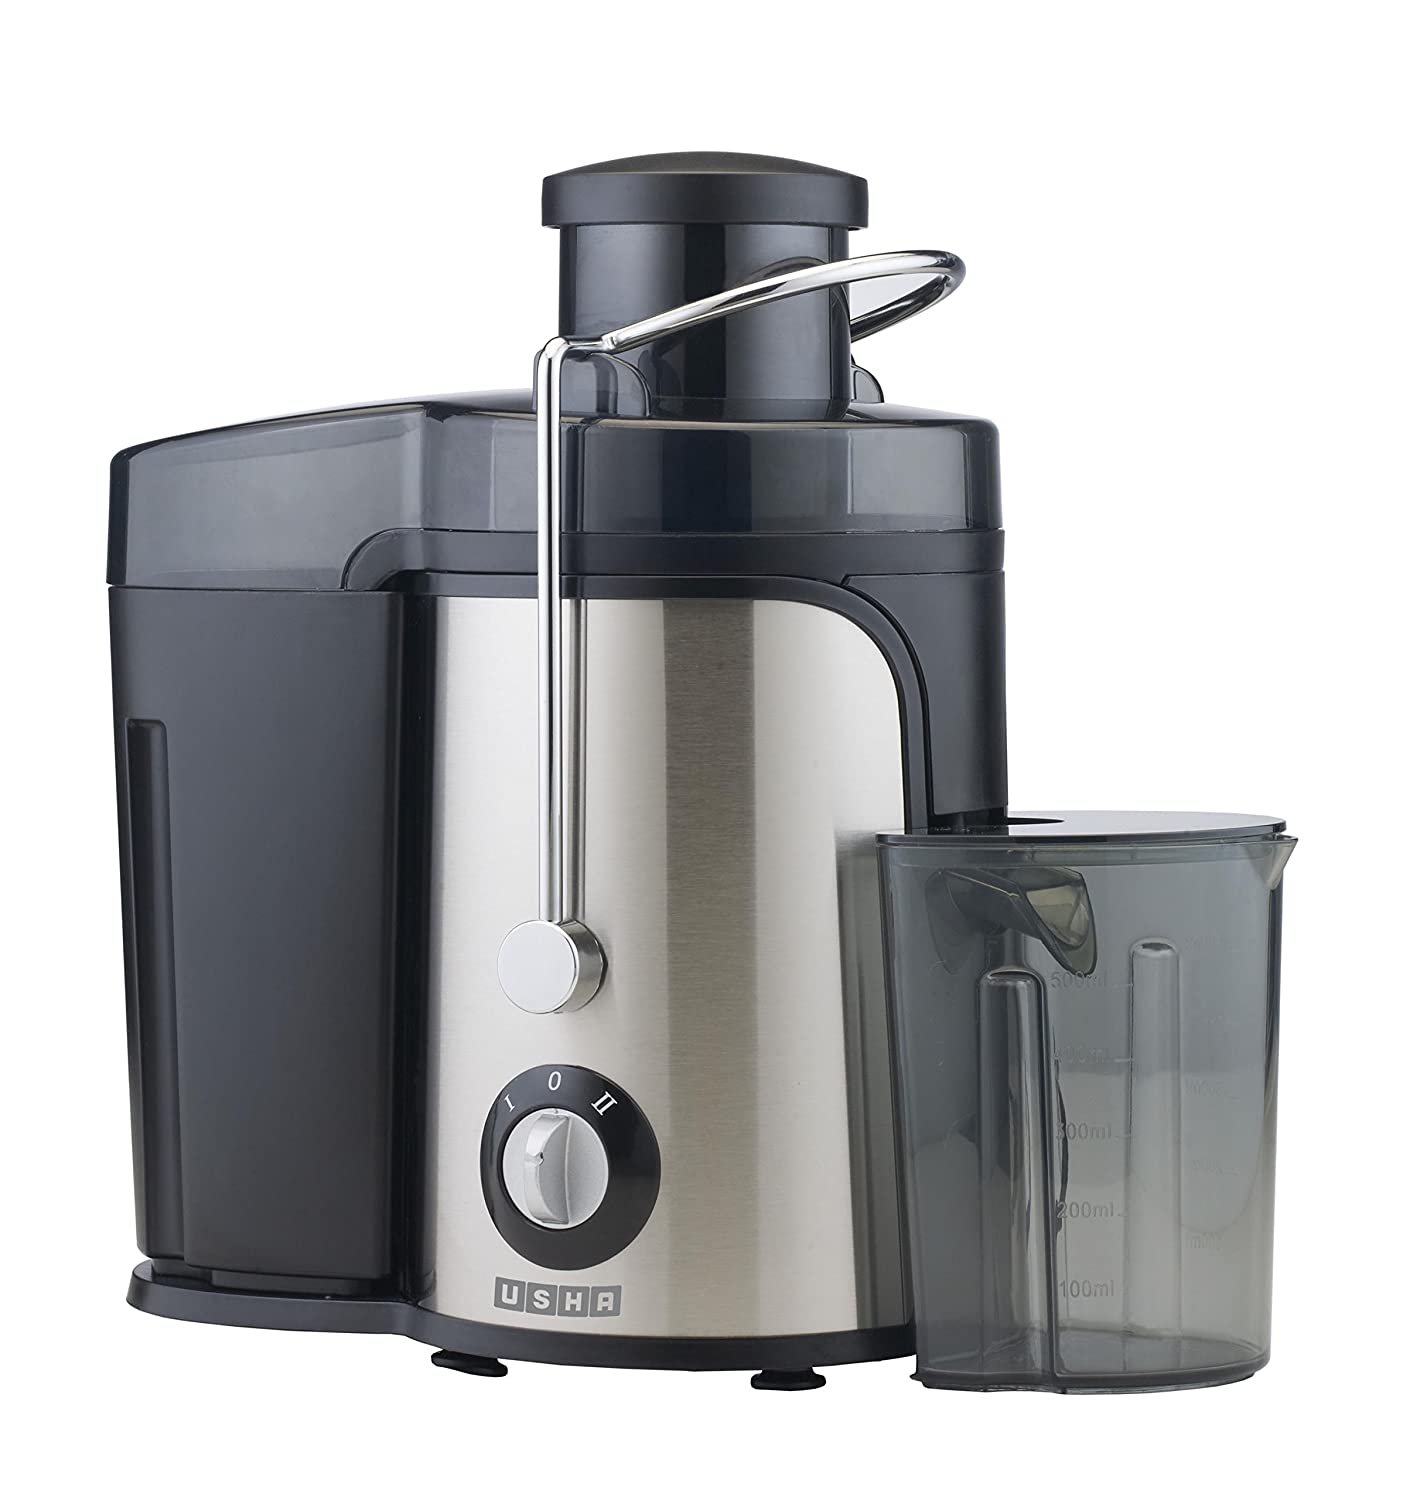 Slow Juicer Reviews 2018 : Best Juicers in India 2018 - Reviews And Comparisons